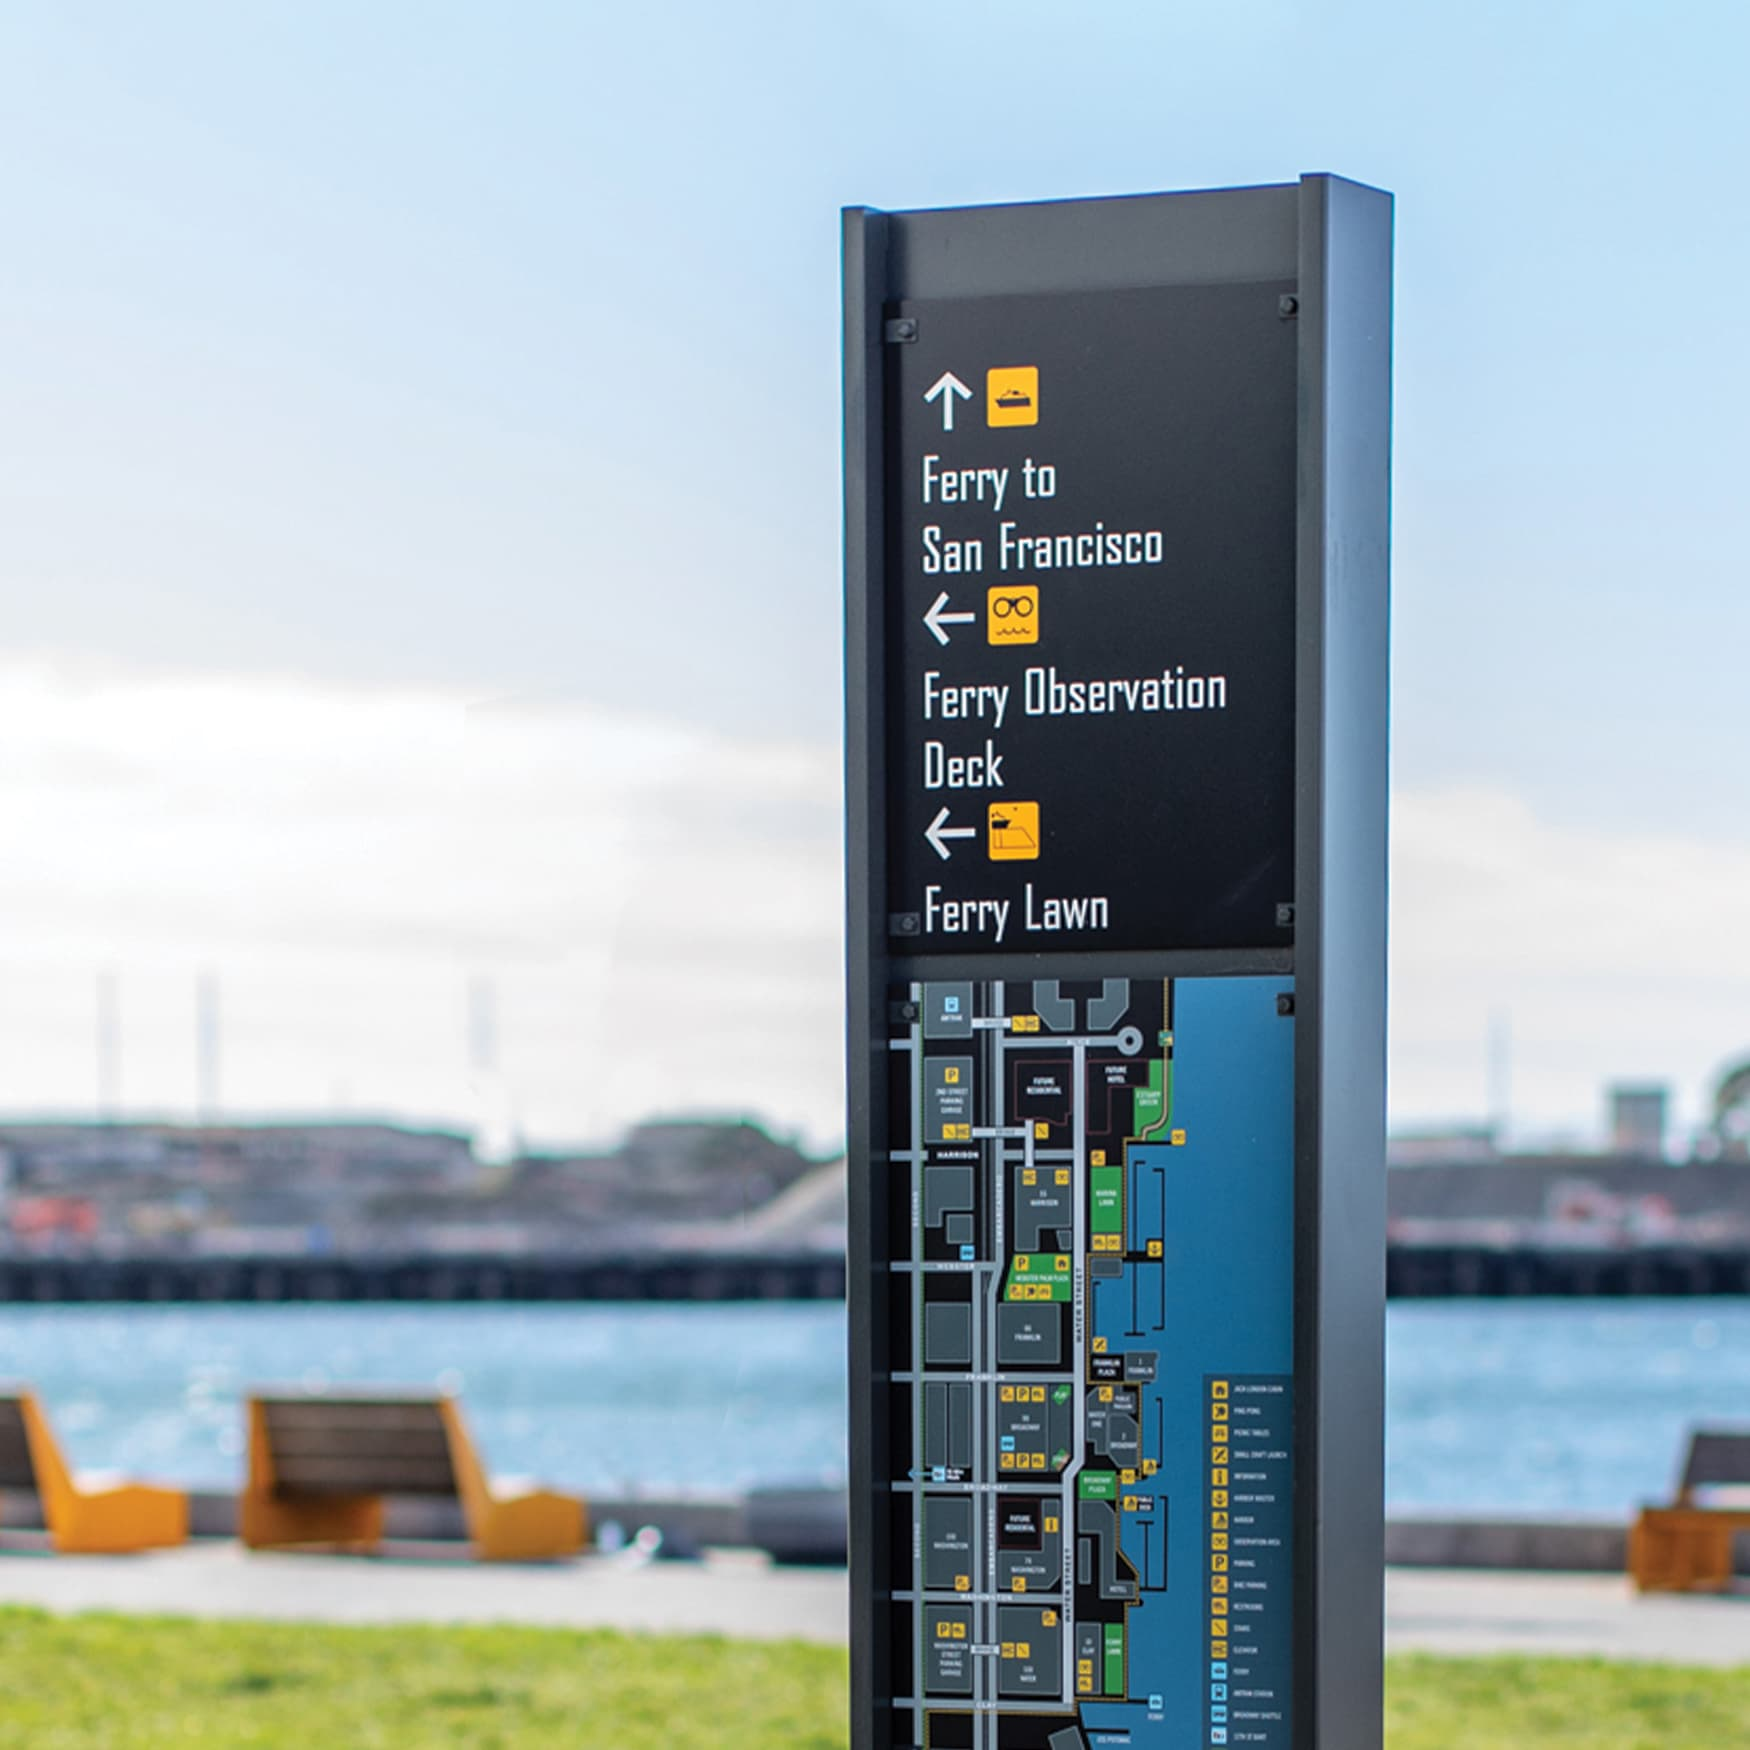 Waterfront Wayfinding Signage with Oakland Harbor and waterfront seating in the background